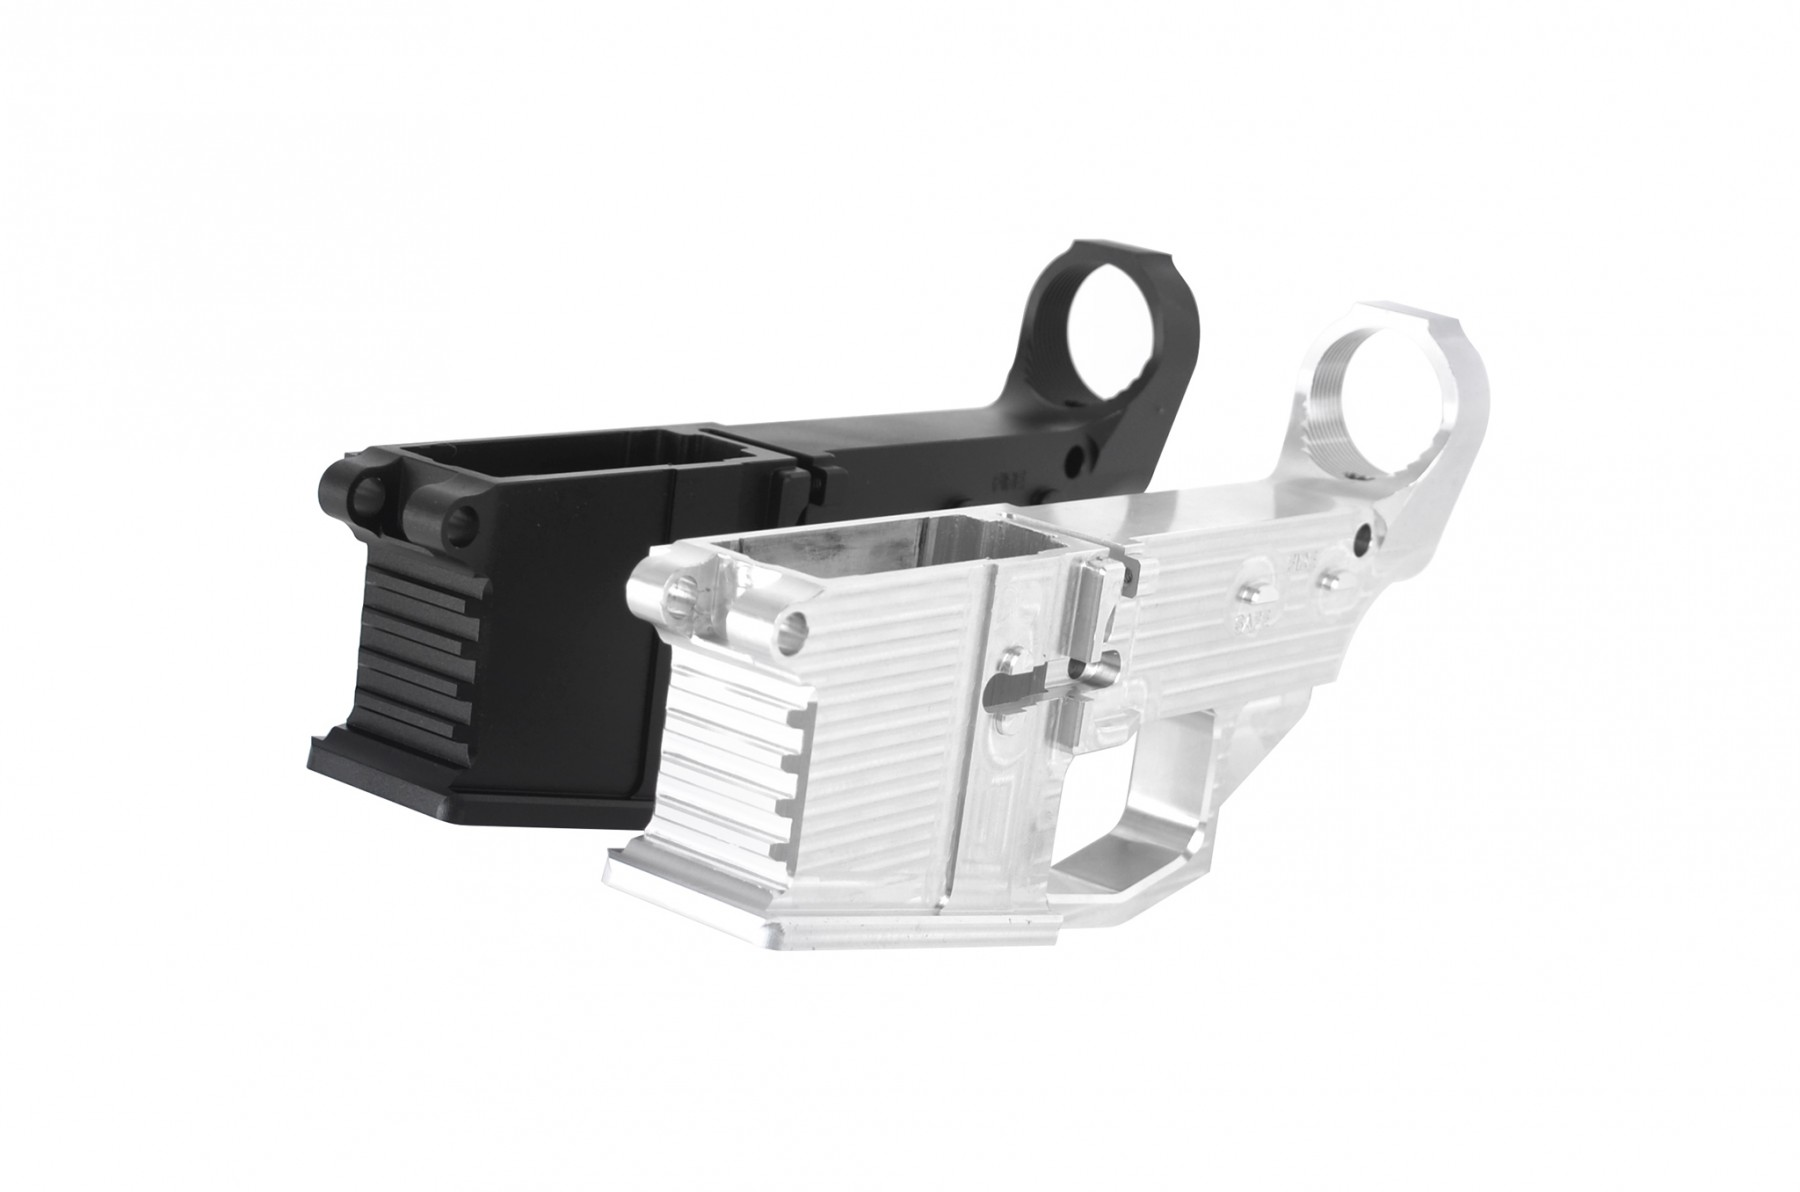 M1 80 AR 15 Lower Receiver